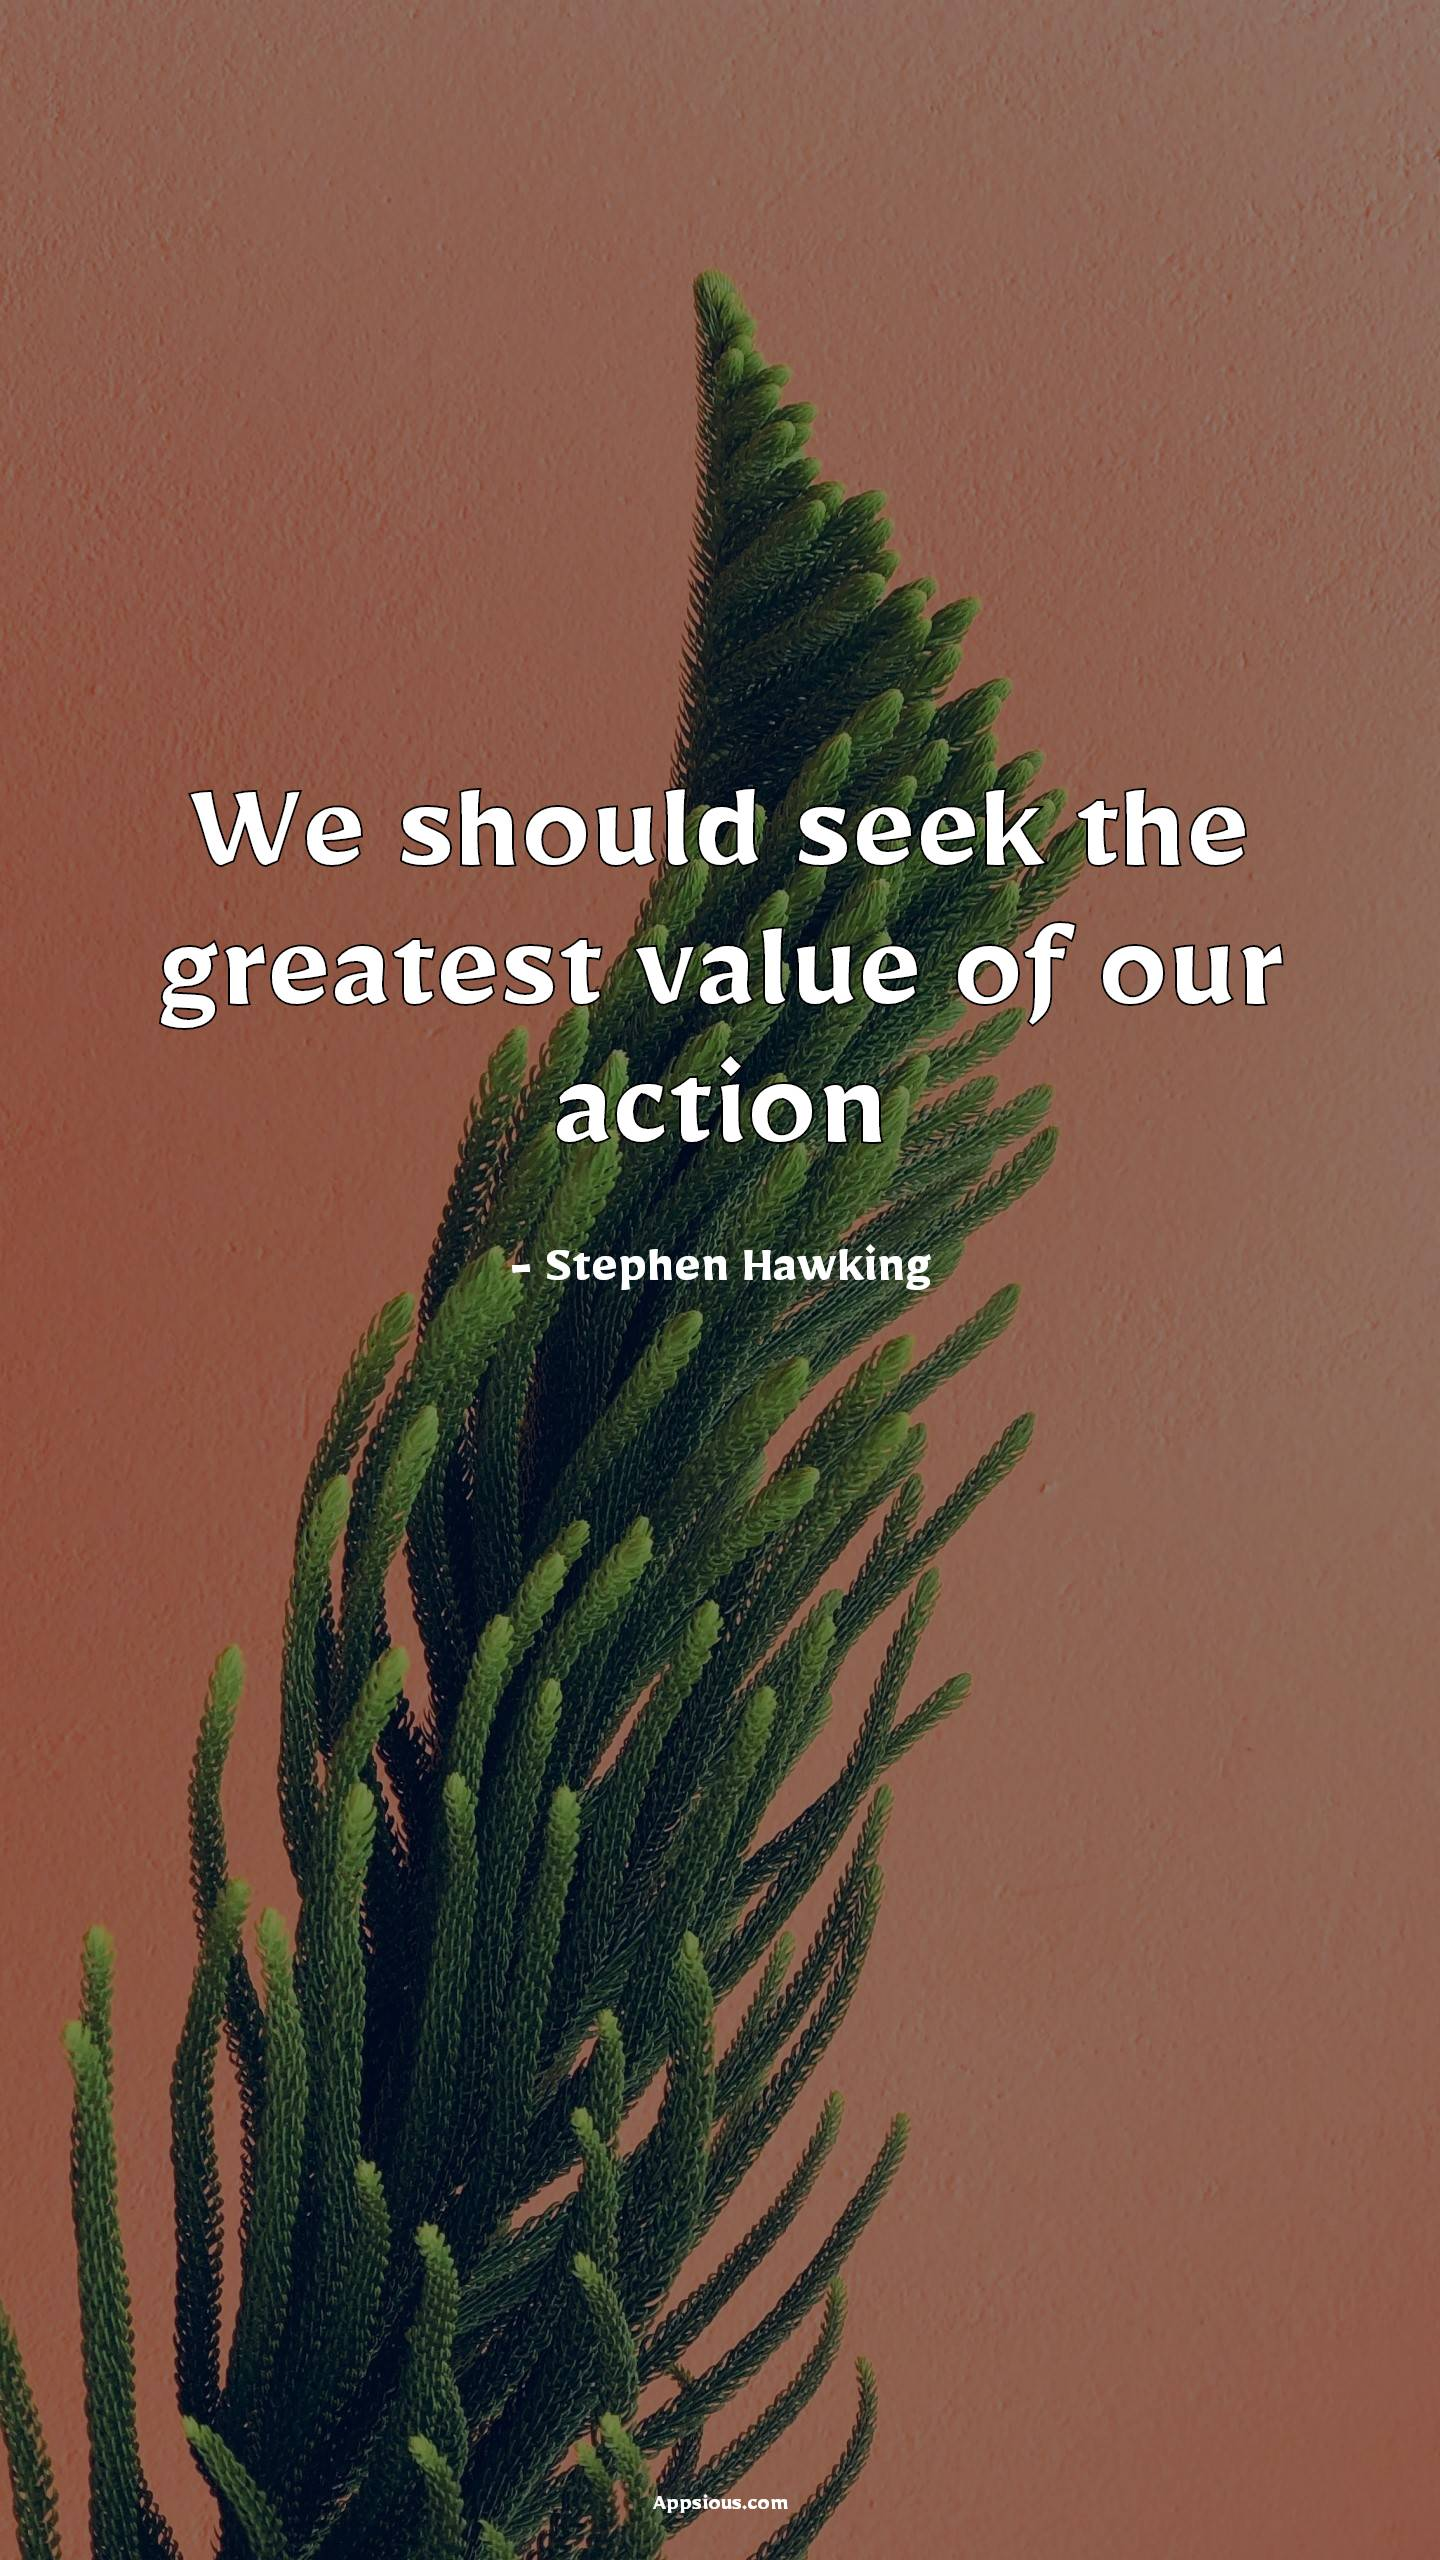 We should seek the greatest value of our action